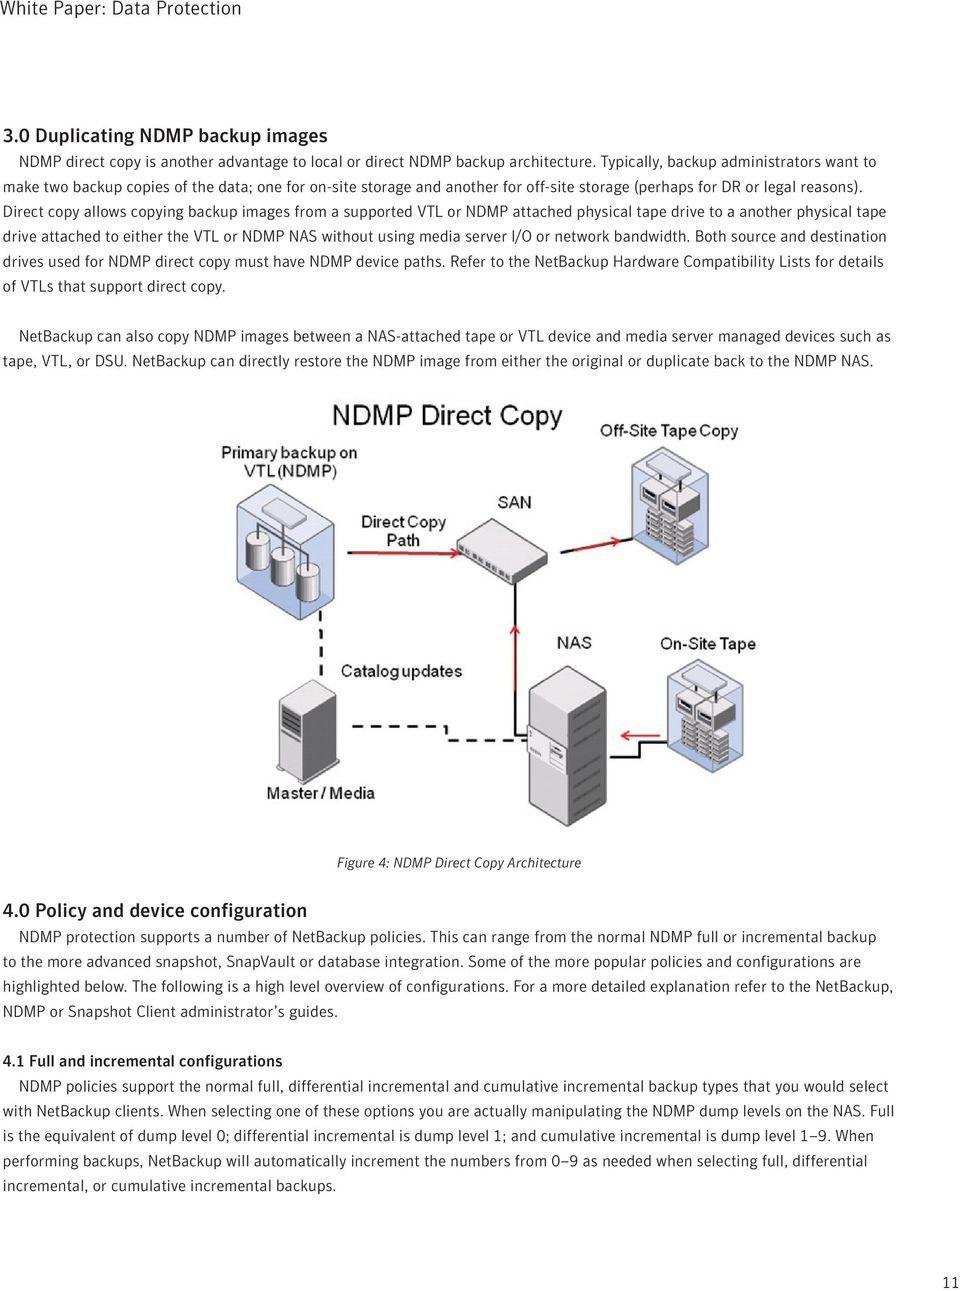 Direct copy allows copying backup images from a supported VTL or NDMP attached physical tape drive to a another physical tape drive attached to either the VTL or NDMP NAS without using media server